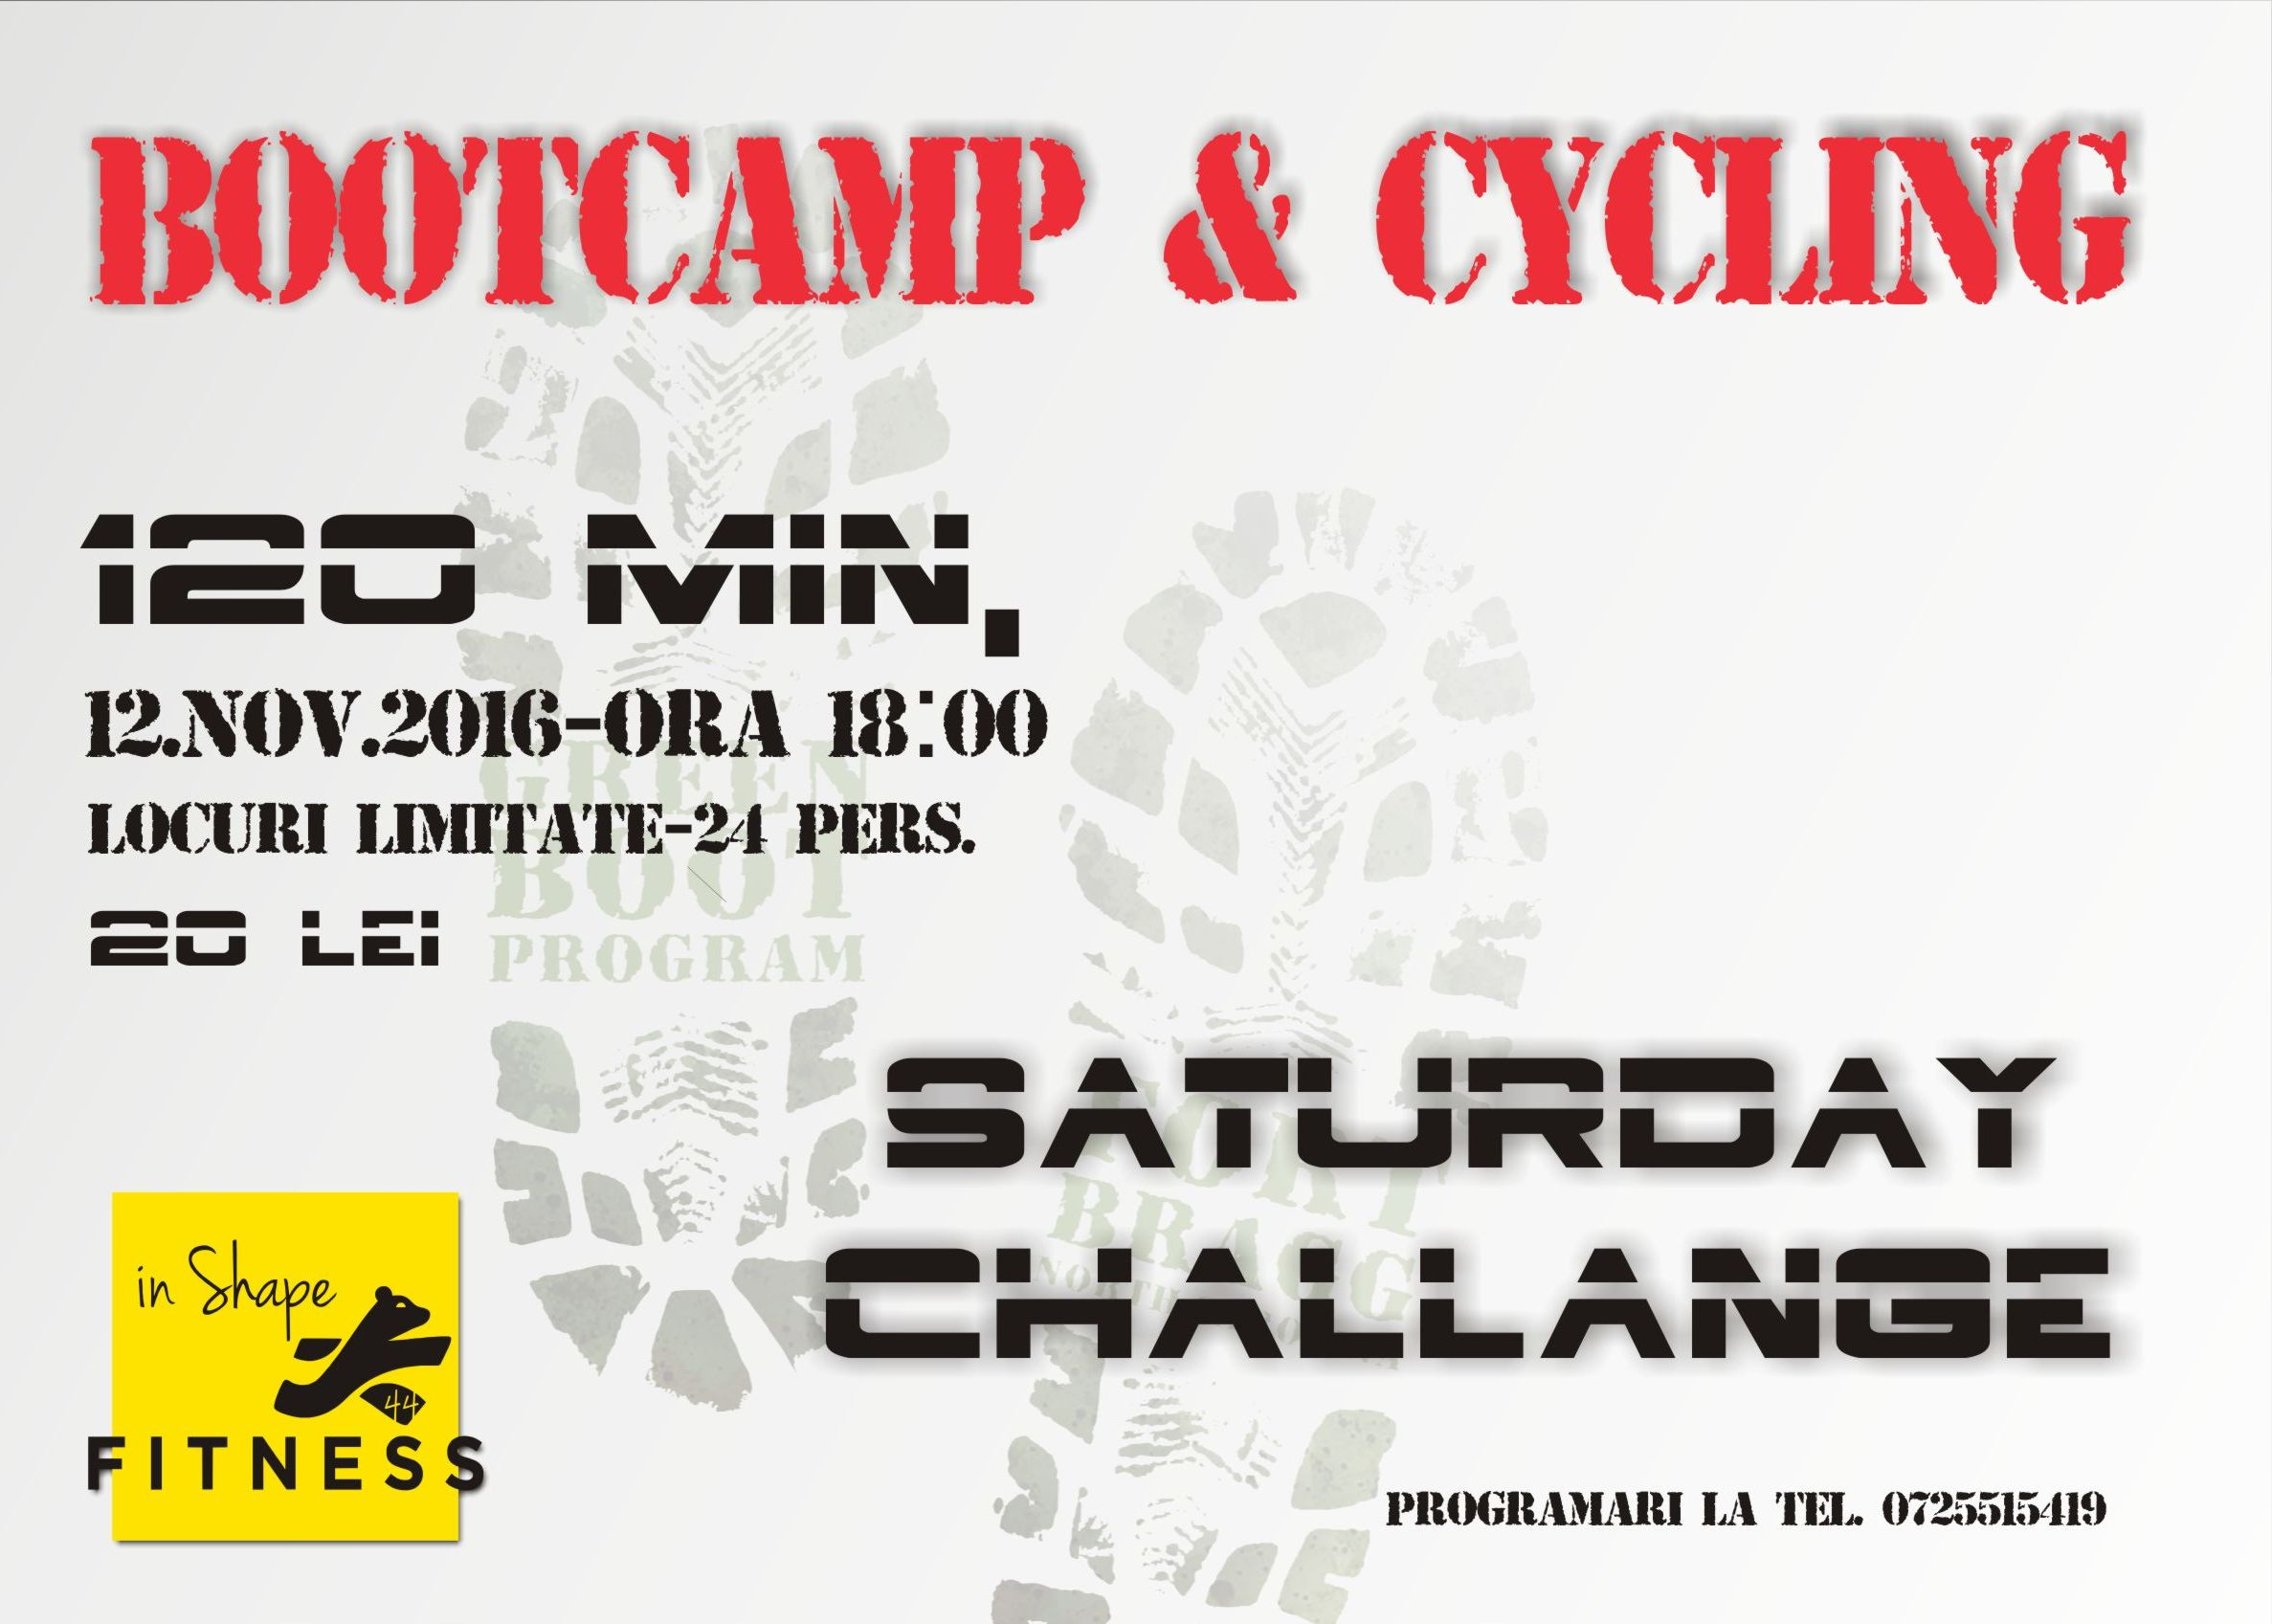 afis-eveniment-boot-cycling-1